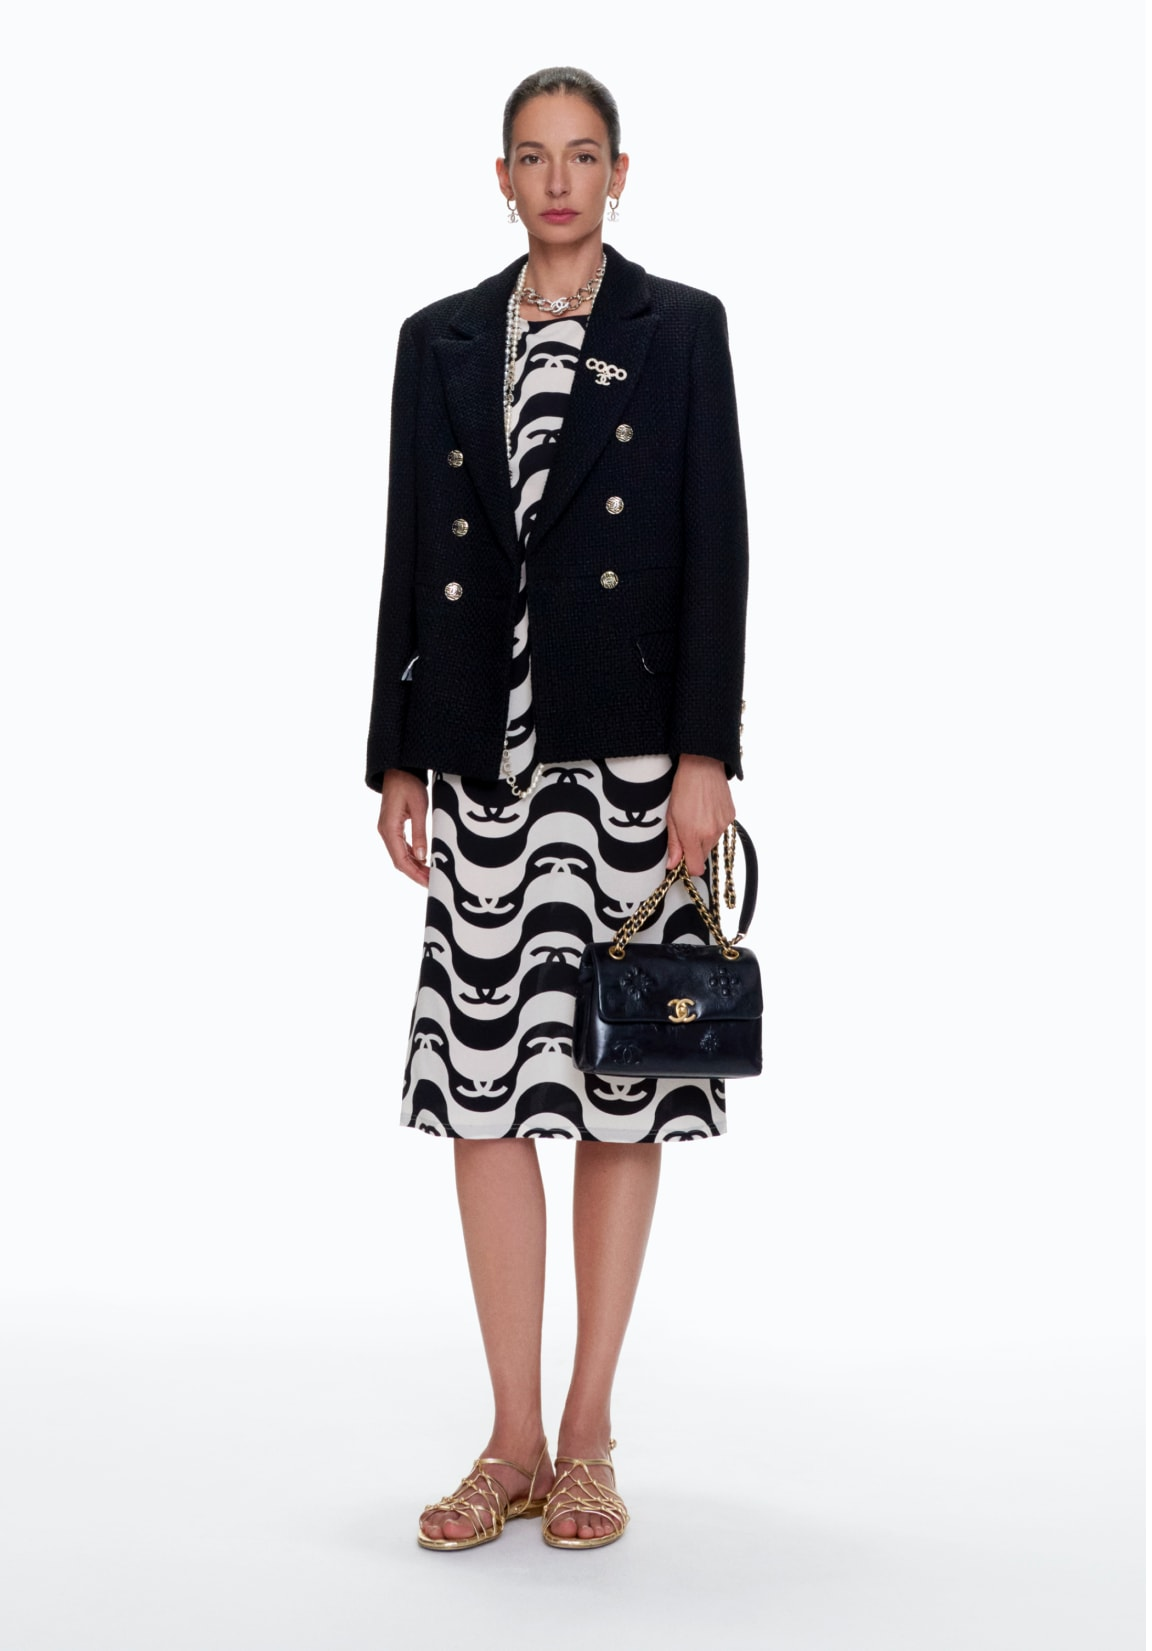 Image 1 - Look 14